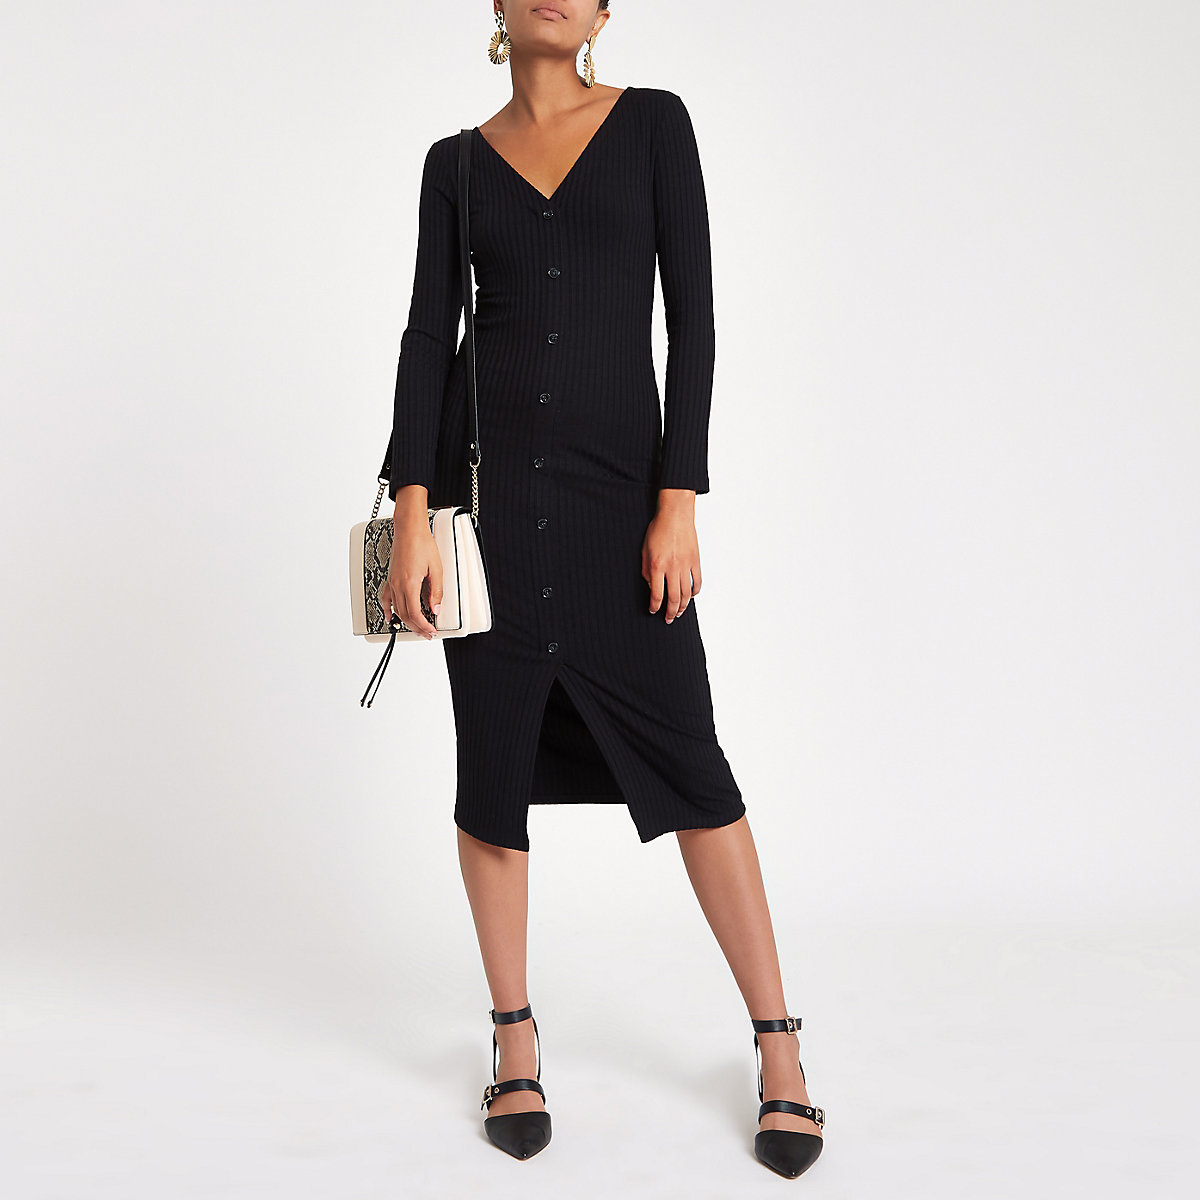 Black ribbed button front bodycon dress